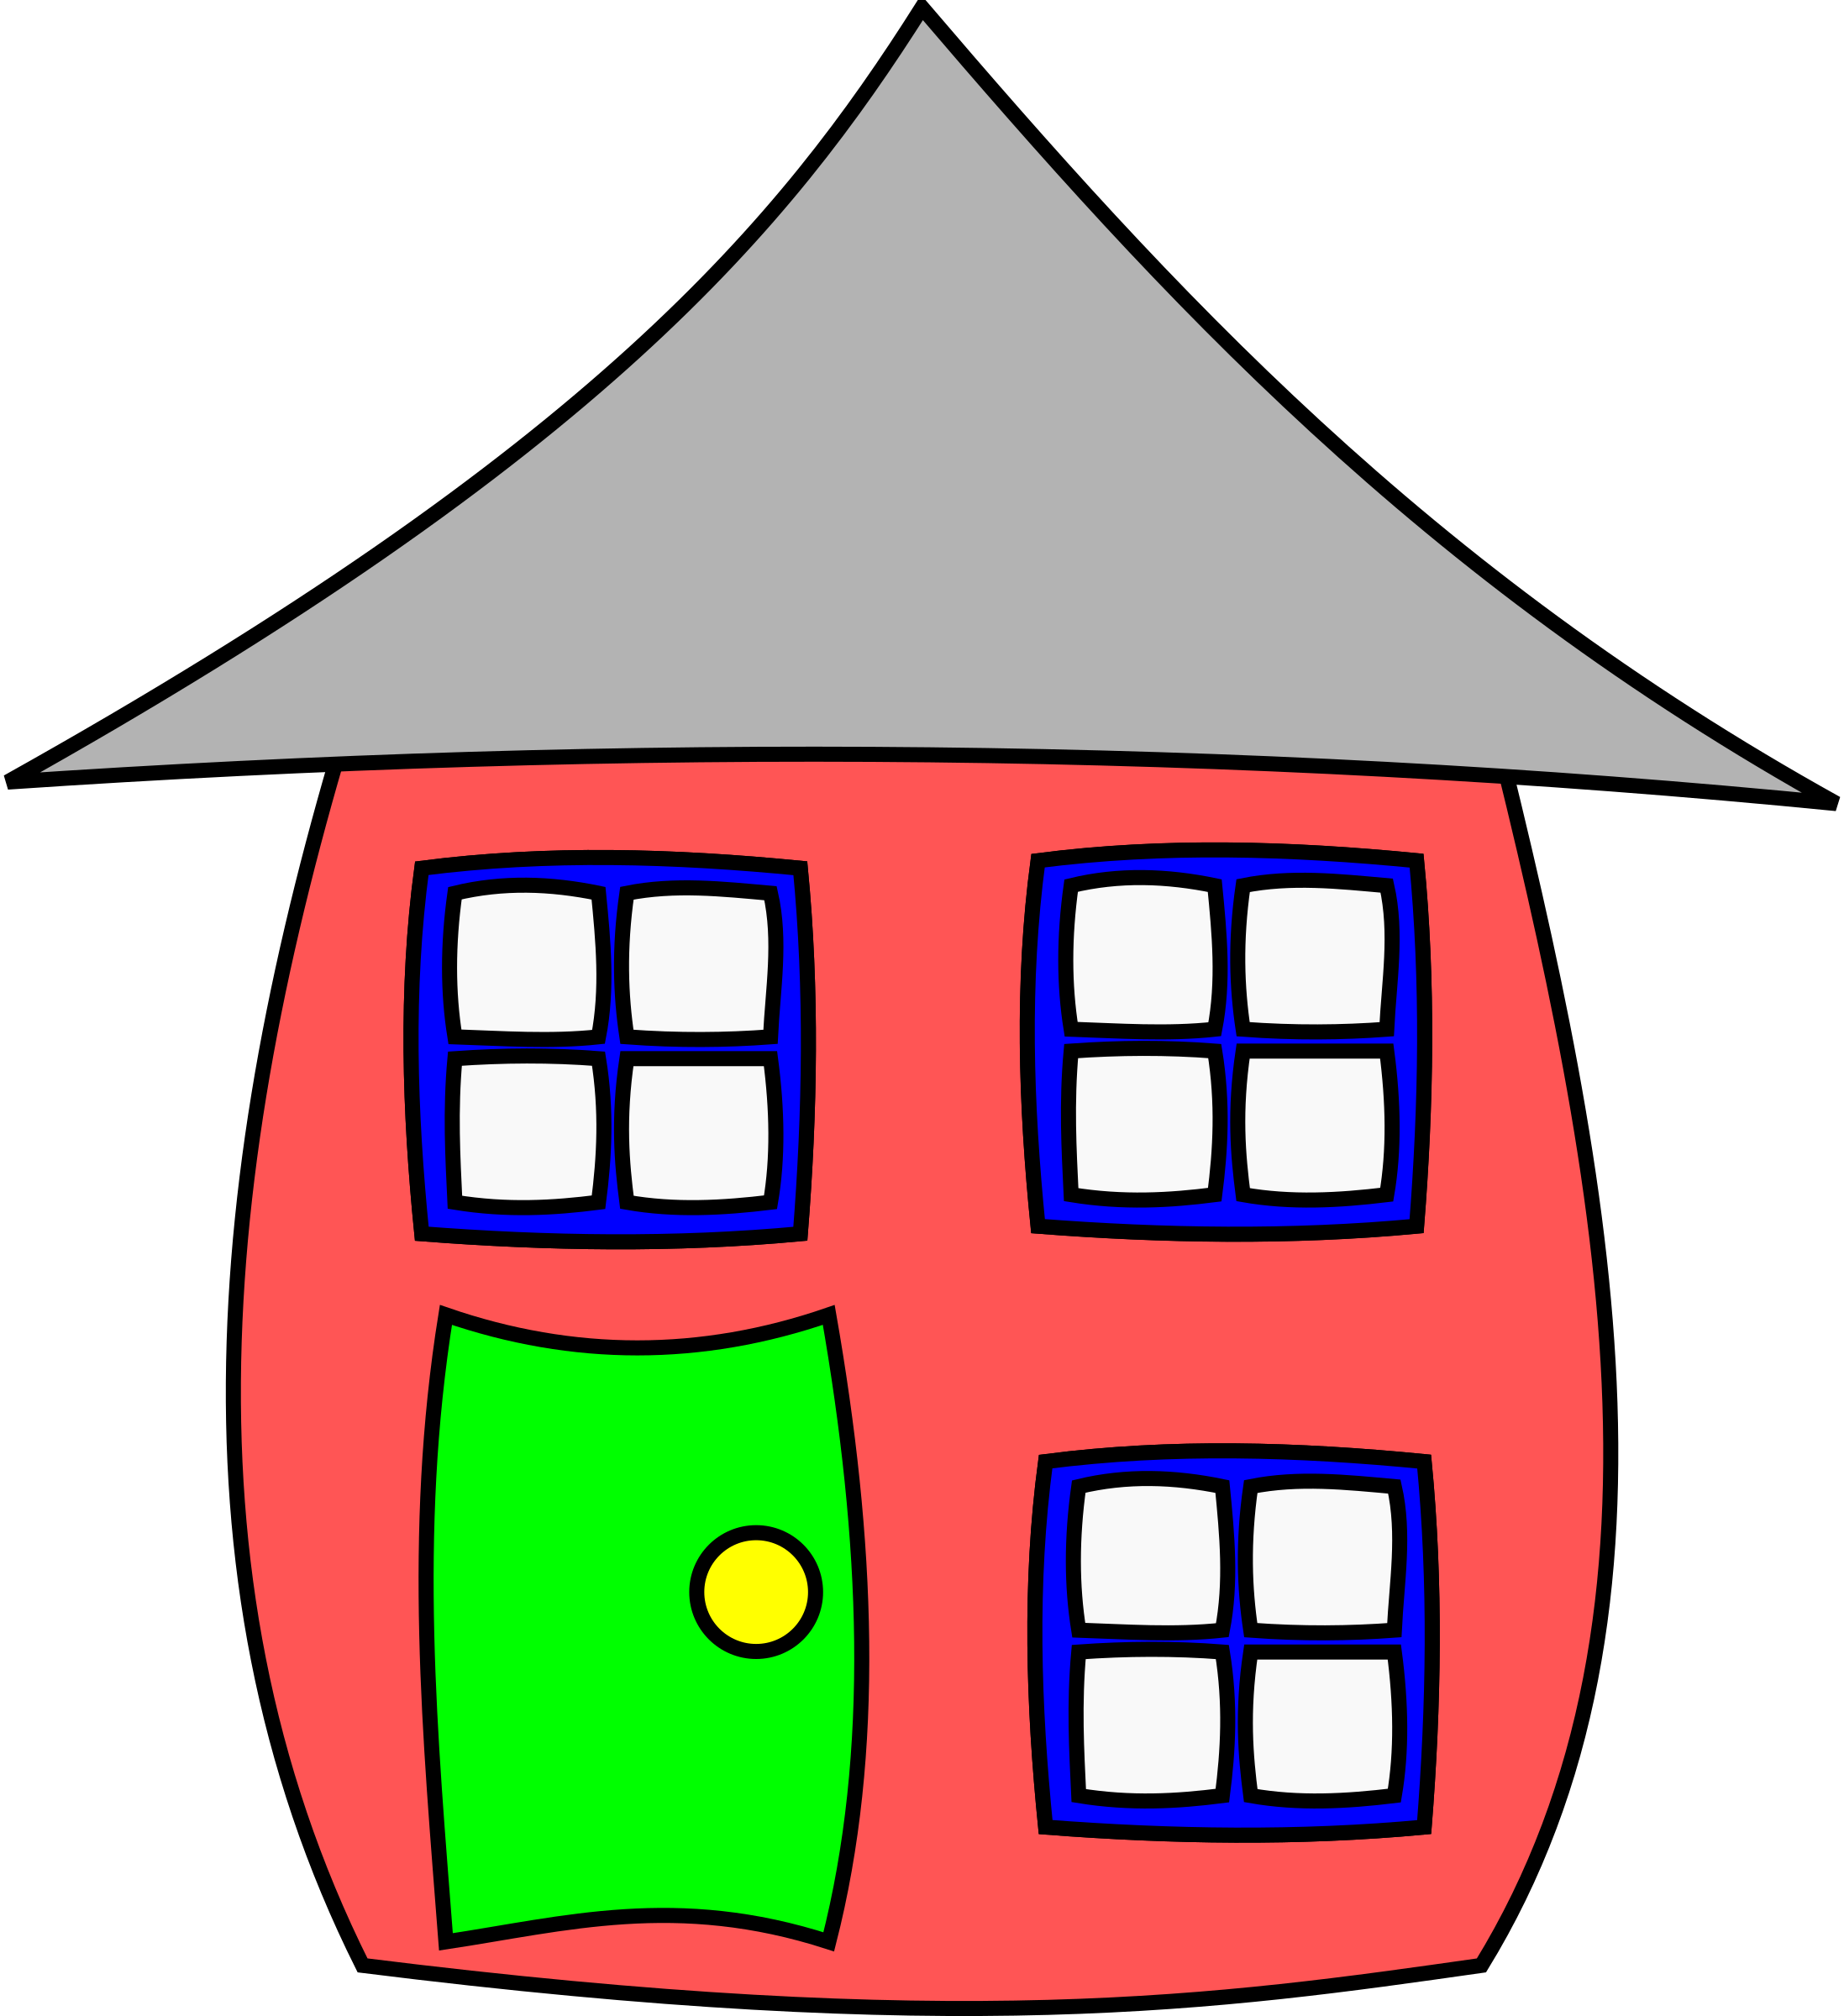 House big image png. Home clipart place